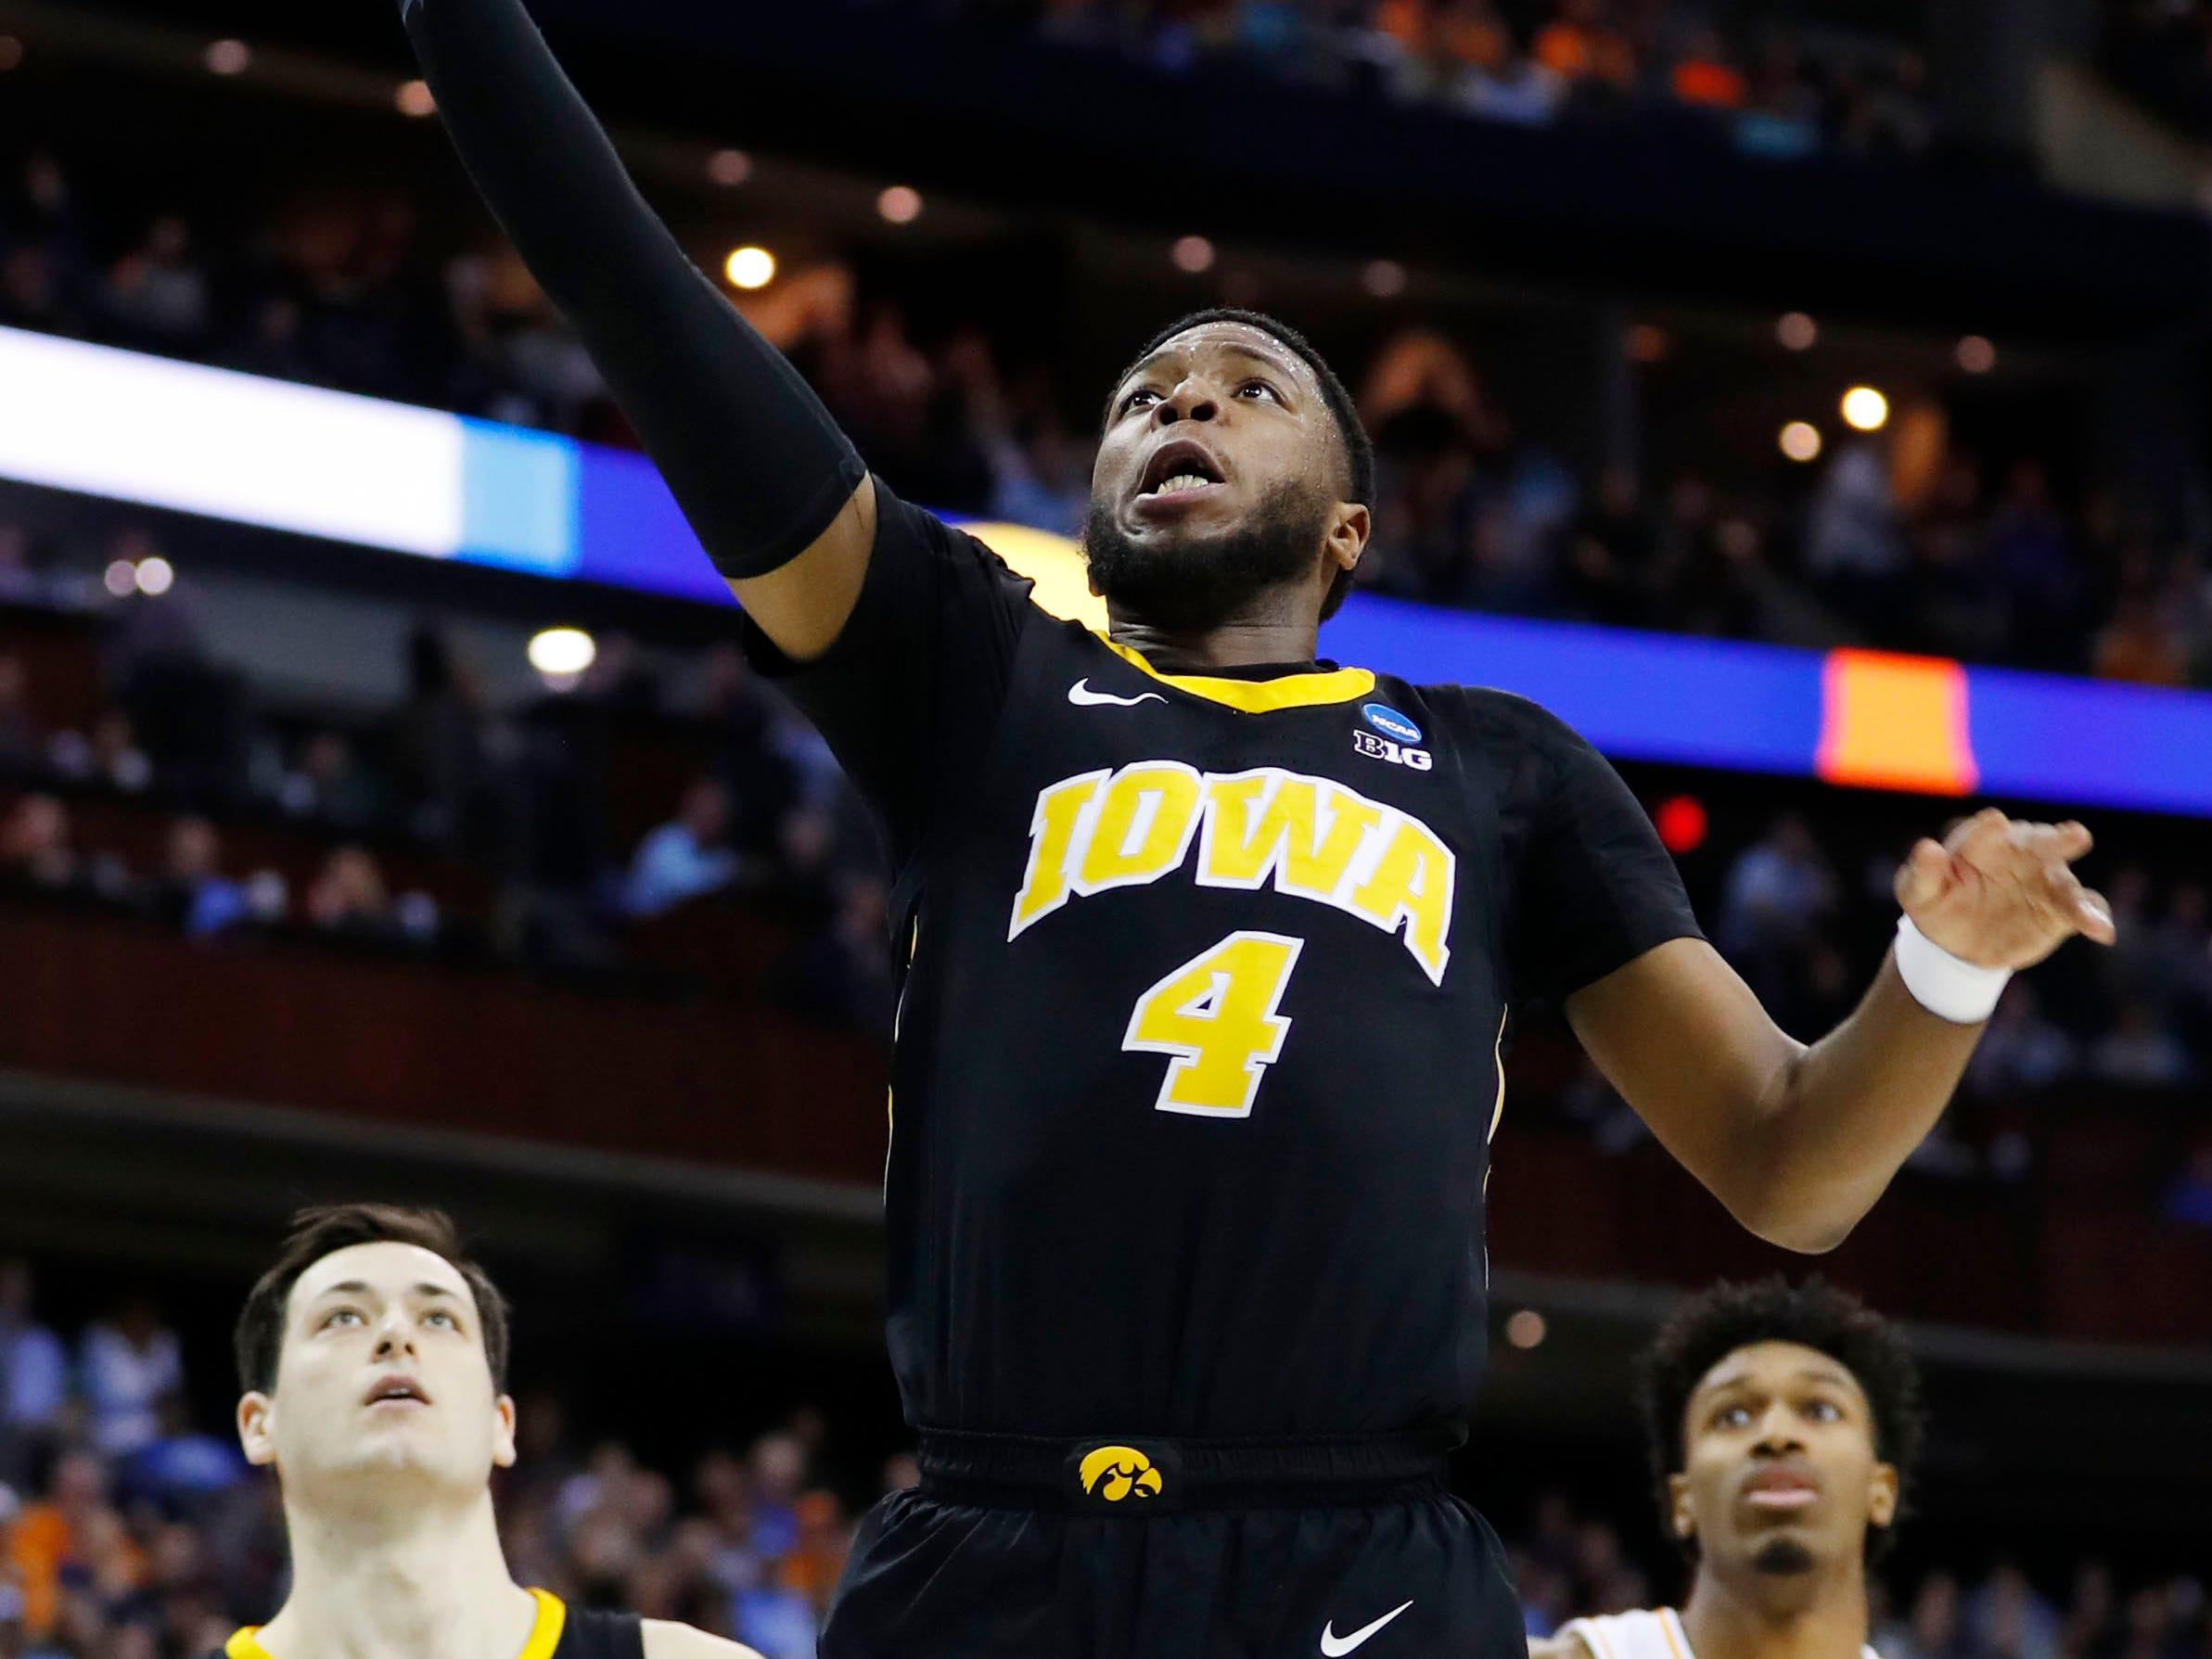 Iowa Hawkeyes guard Isaiah Moss (4) goes to the basket in the first half against the Tennessee Volunteers in the second round of the 2019 NCAA Tournament at Nationwide Arena.